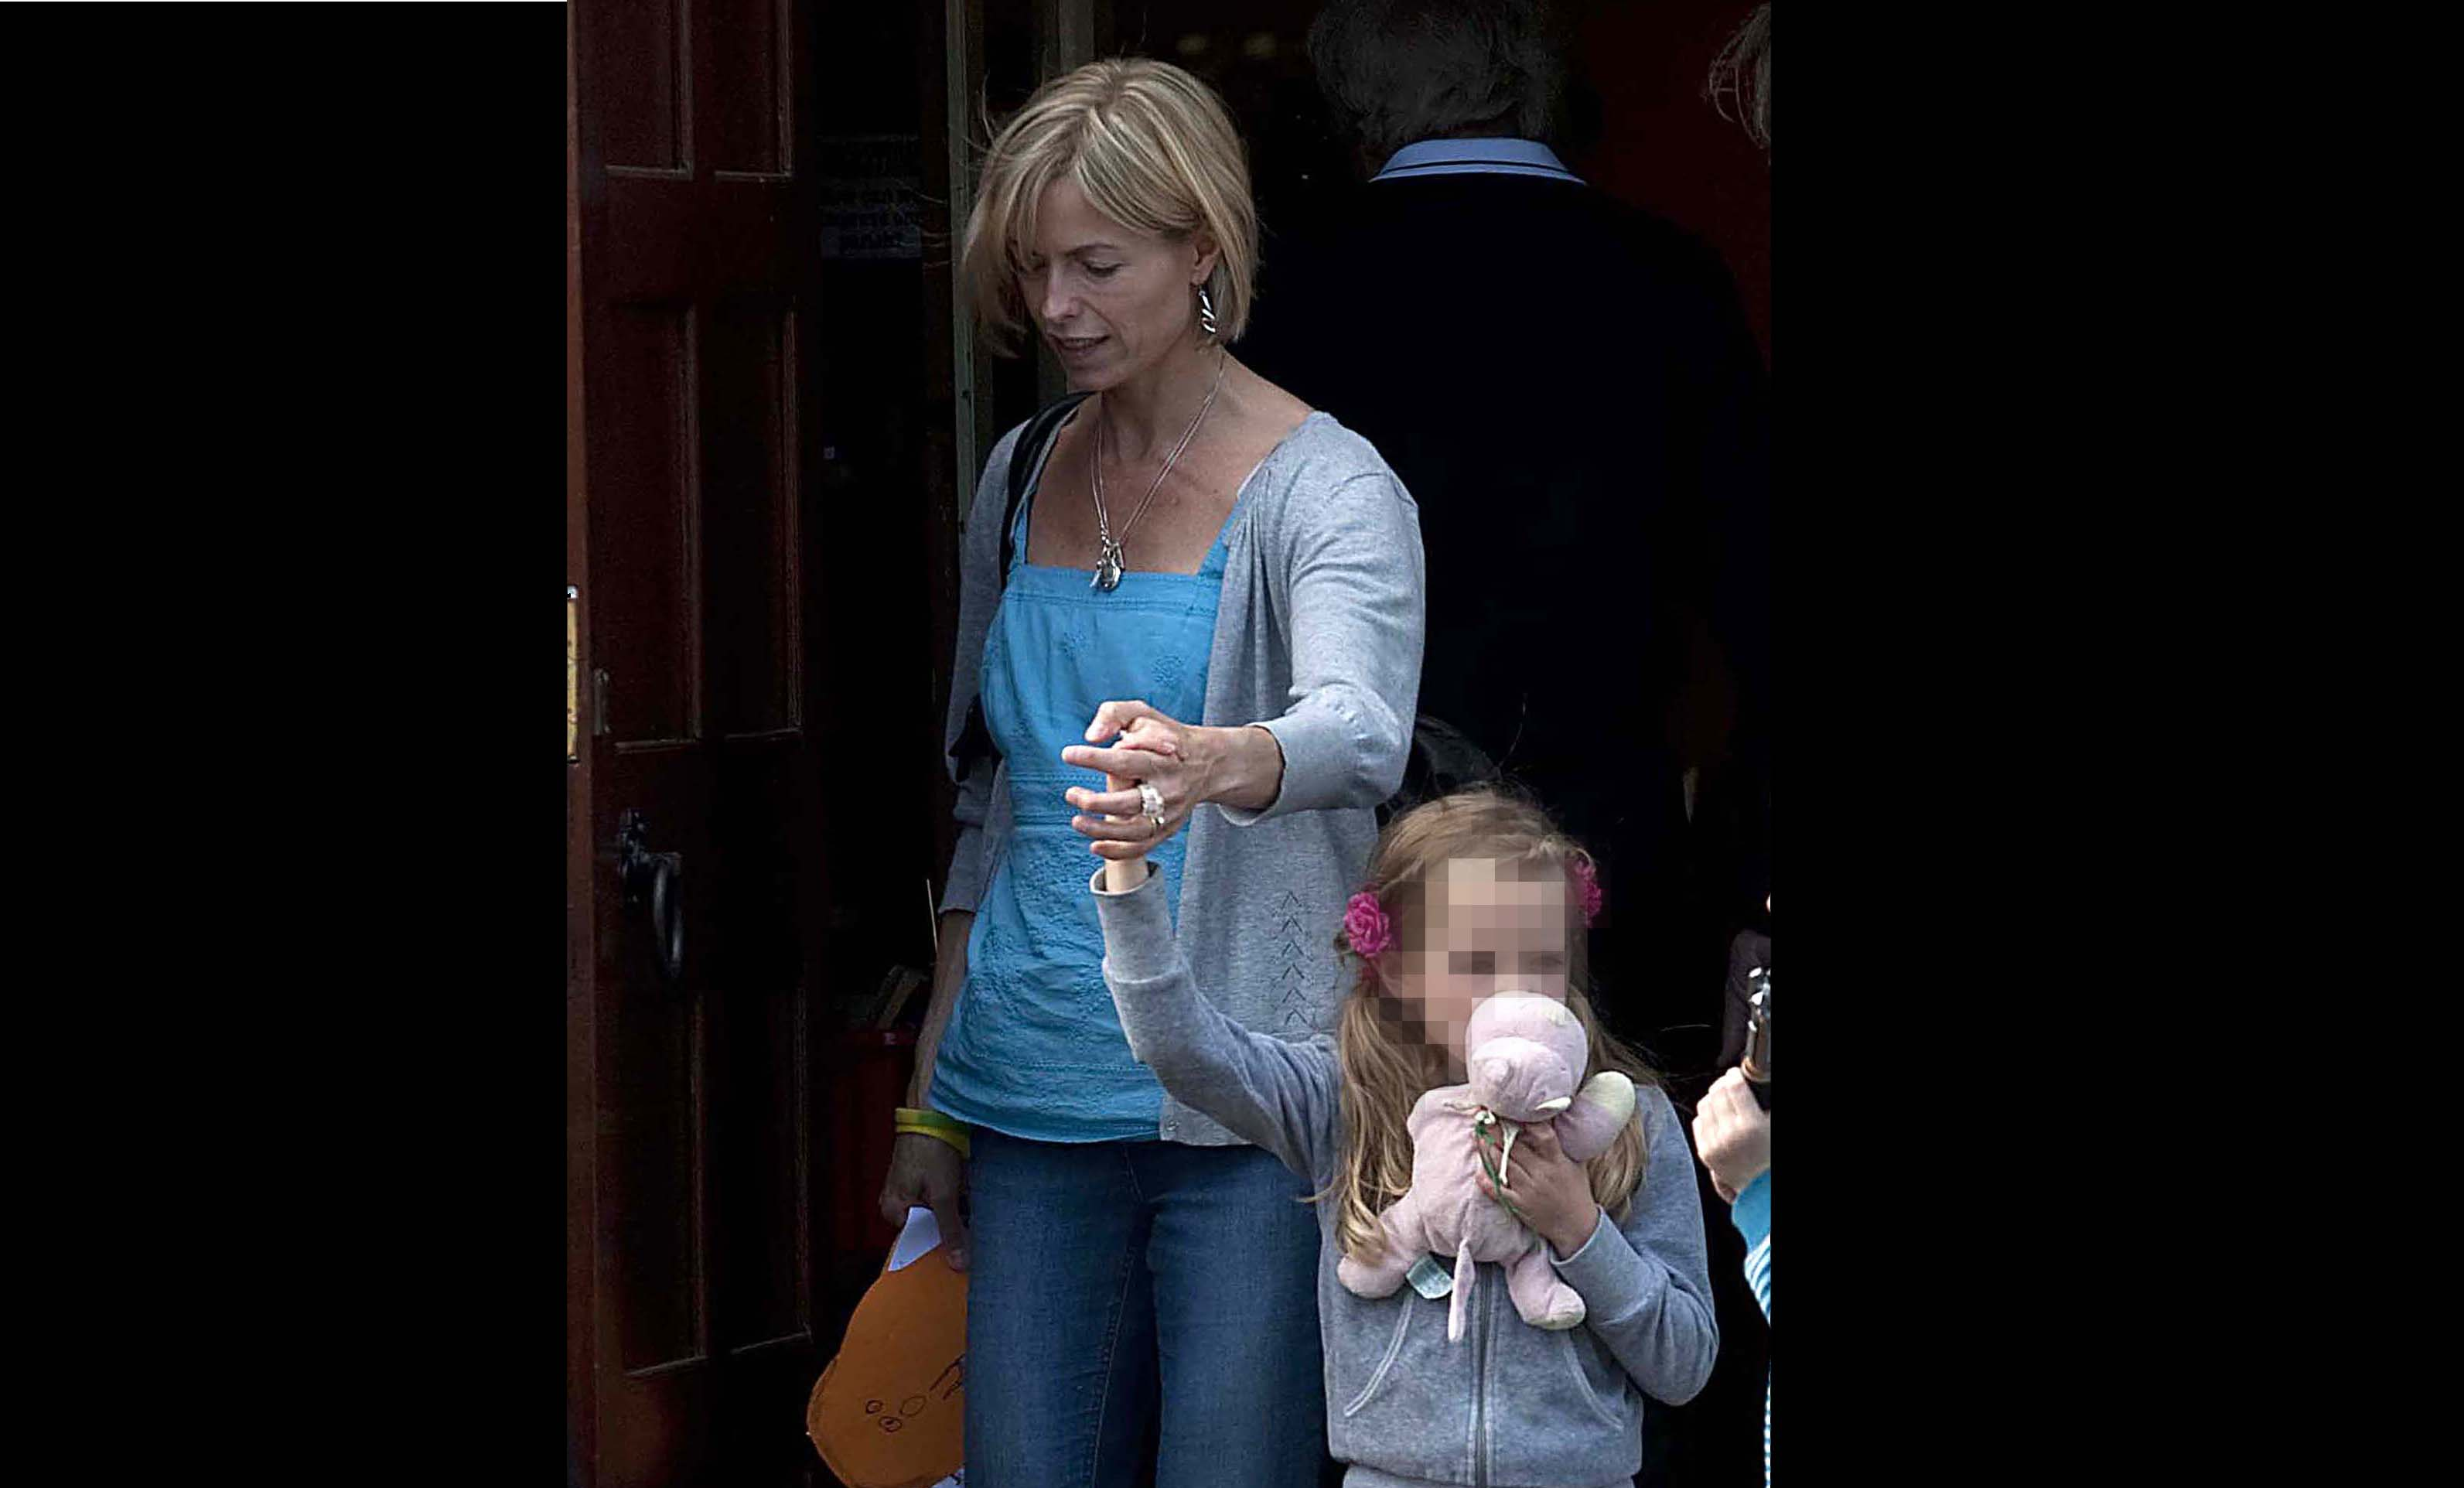 Kate McCann leaves with her daughter after attending the Church of the Sacred Heart in Rothley,